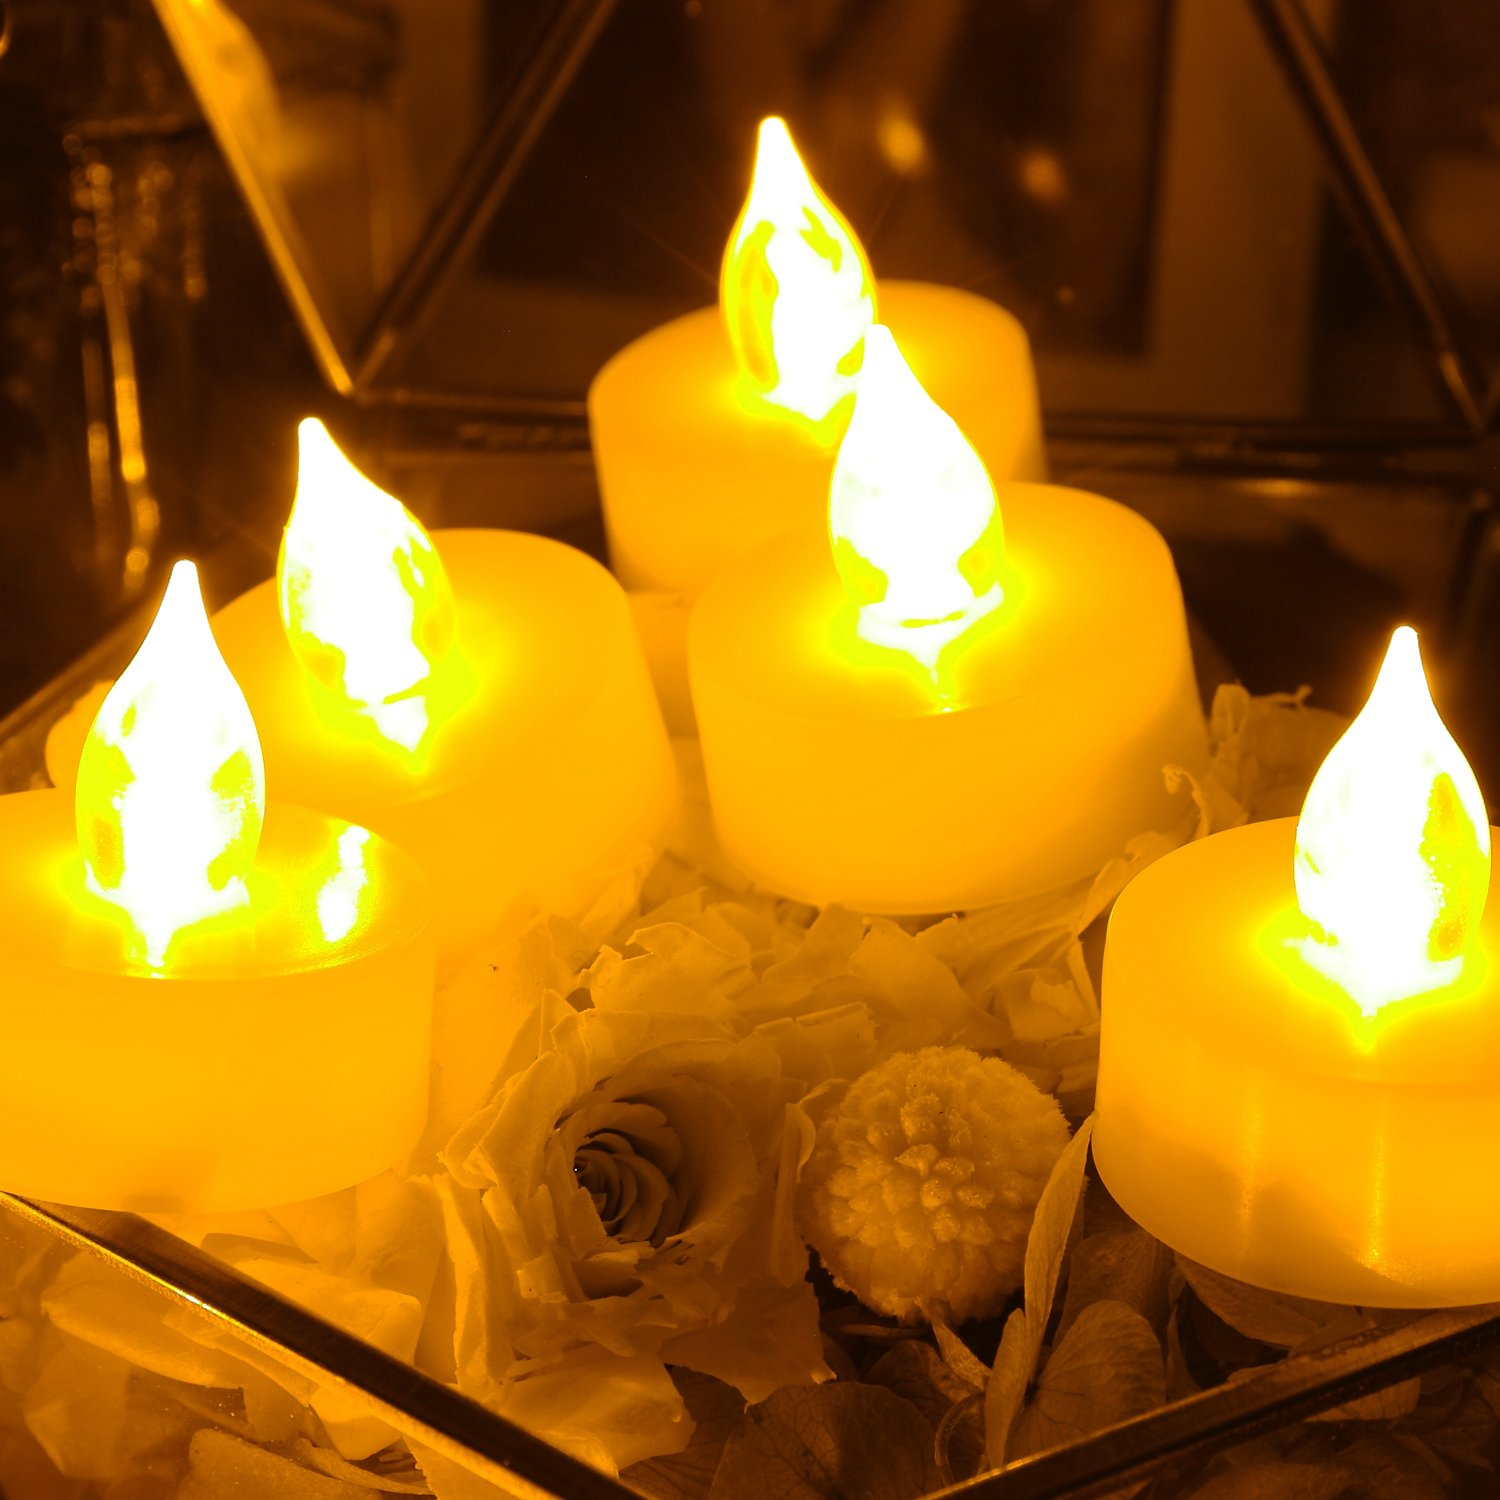 Buy 6 Pcs Premium Flameless Tealights With Timer Led Tealights